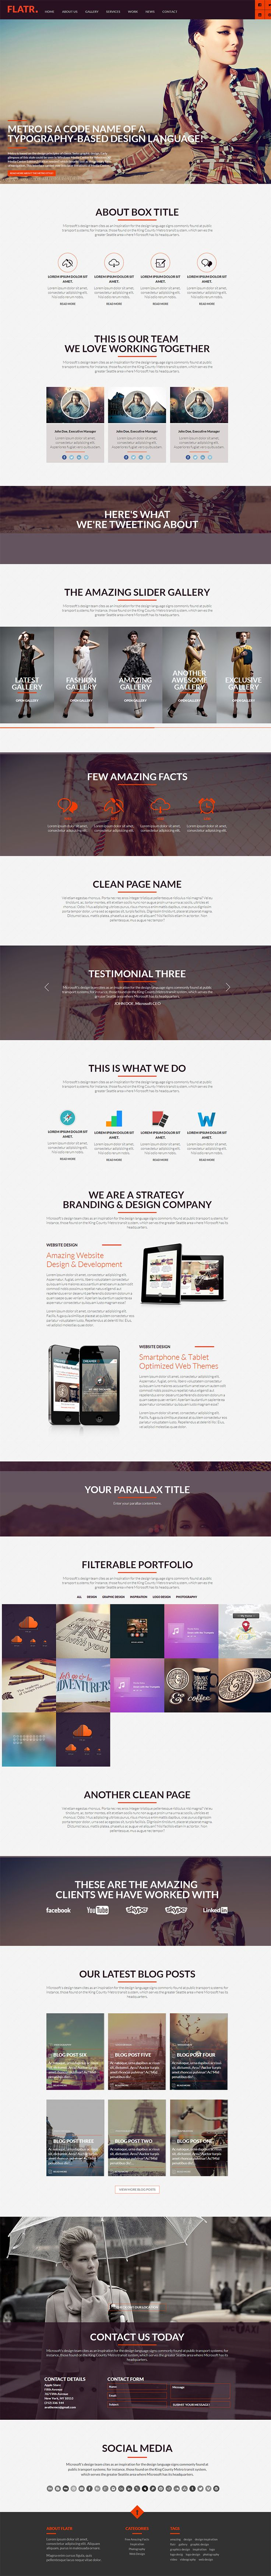 Very long #onepage webdesign. It's becoming a bit generic. #Flat Metro #Parallax #Onepage #Theme #webdesign